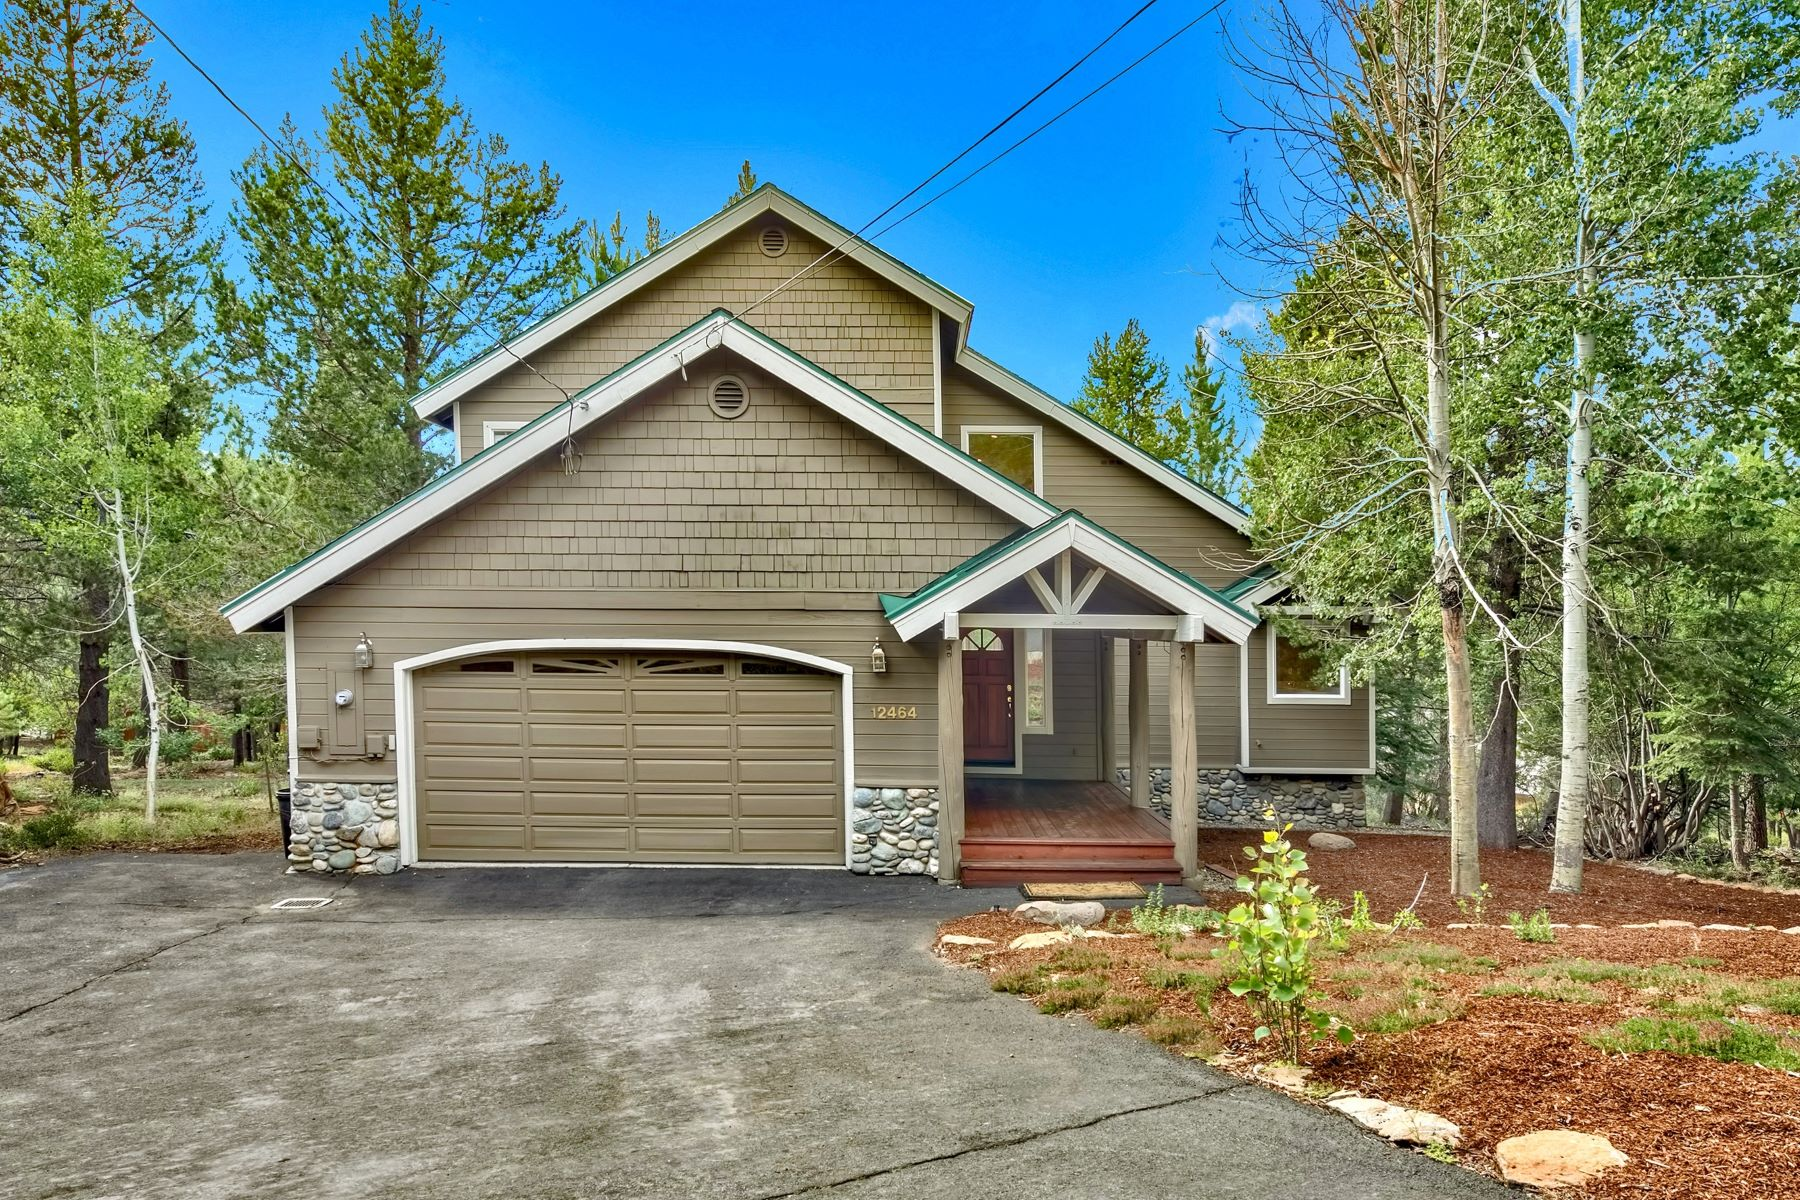 Single Family Homes for Active at 12464 Snowpeak Way, Truckee, CA 96161 12464 Snowpeak Way Truckee, California 96161 United States